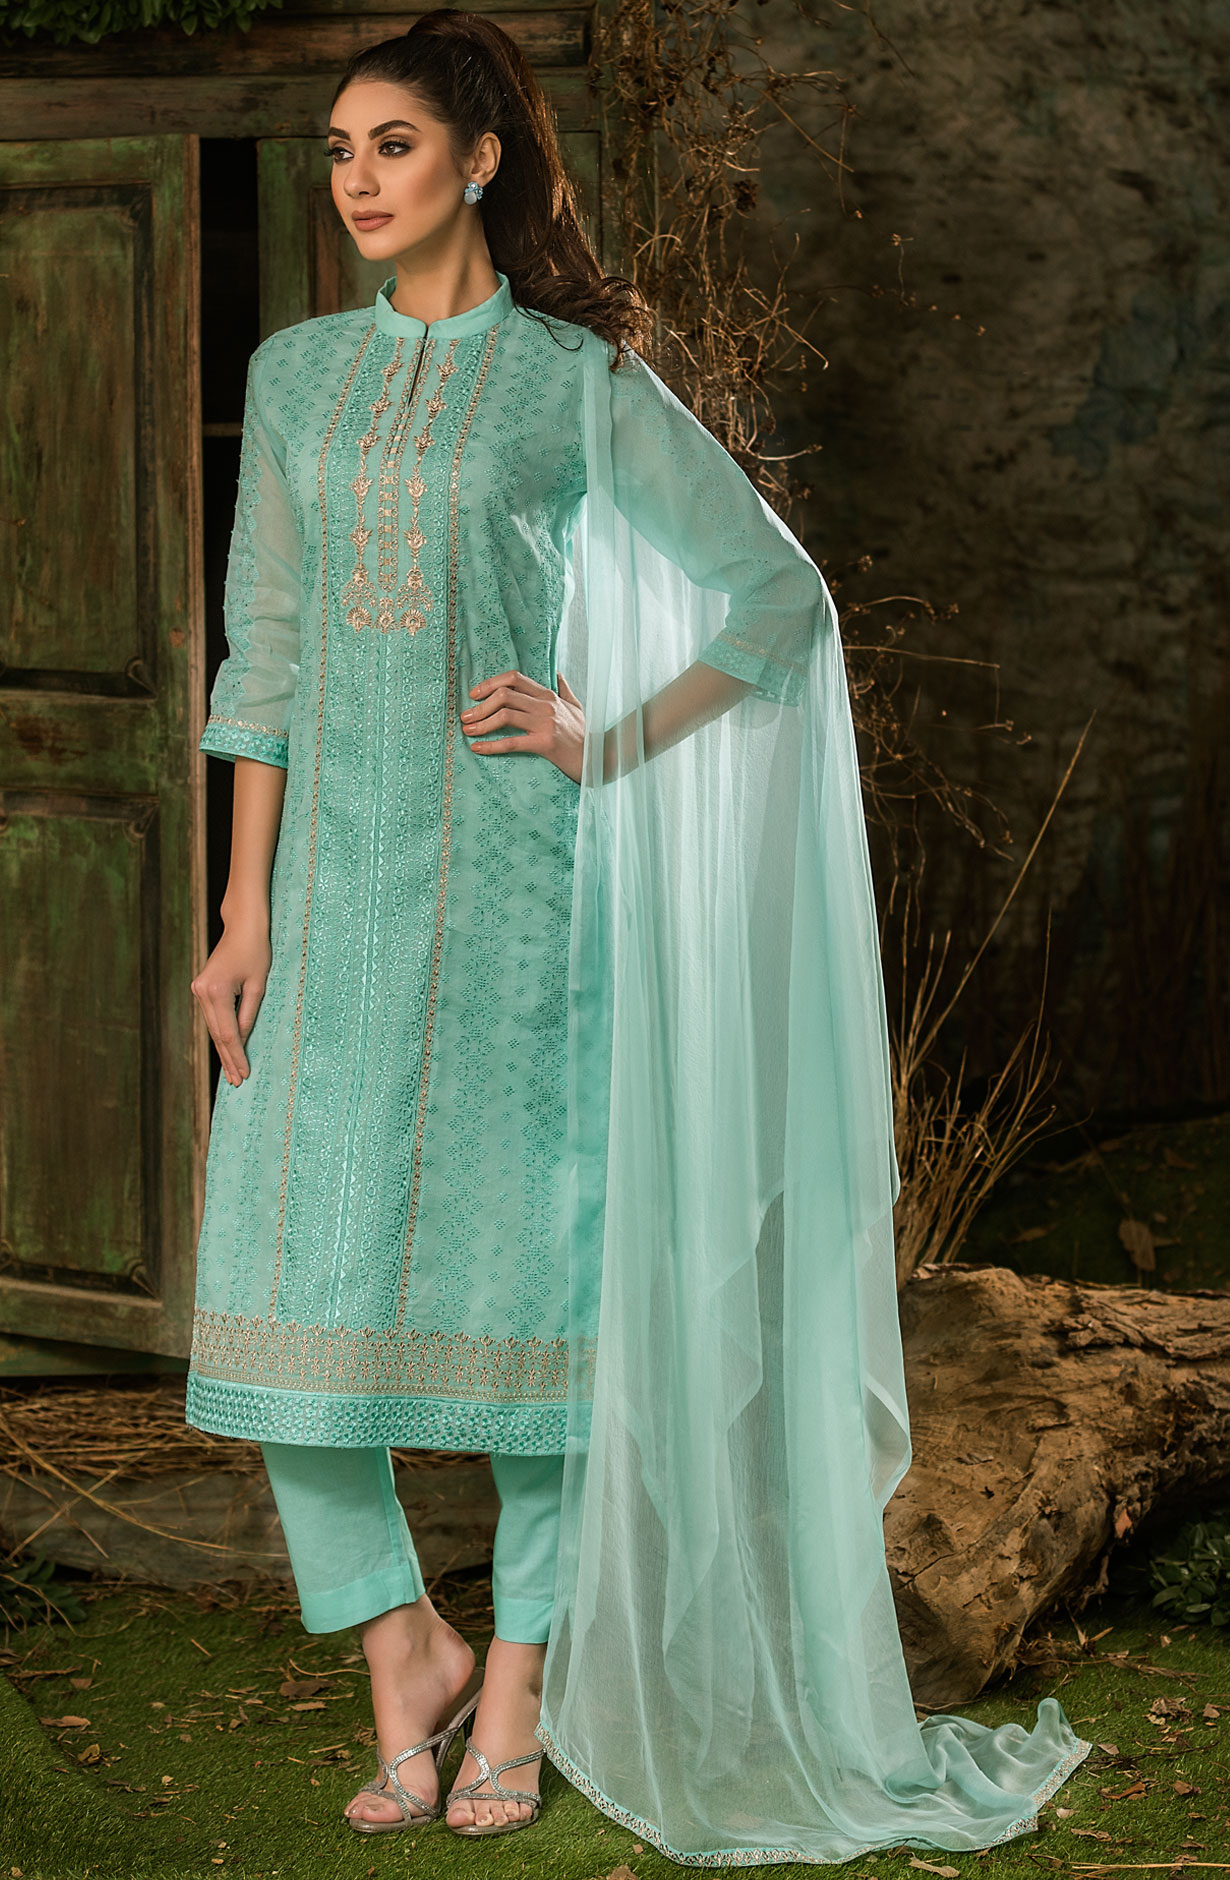 06570aa3d6c Cotton Embroidered Sea Green Shalwar Kameez Dupatta with Zari Work ...